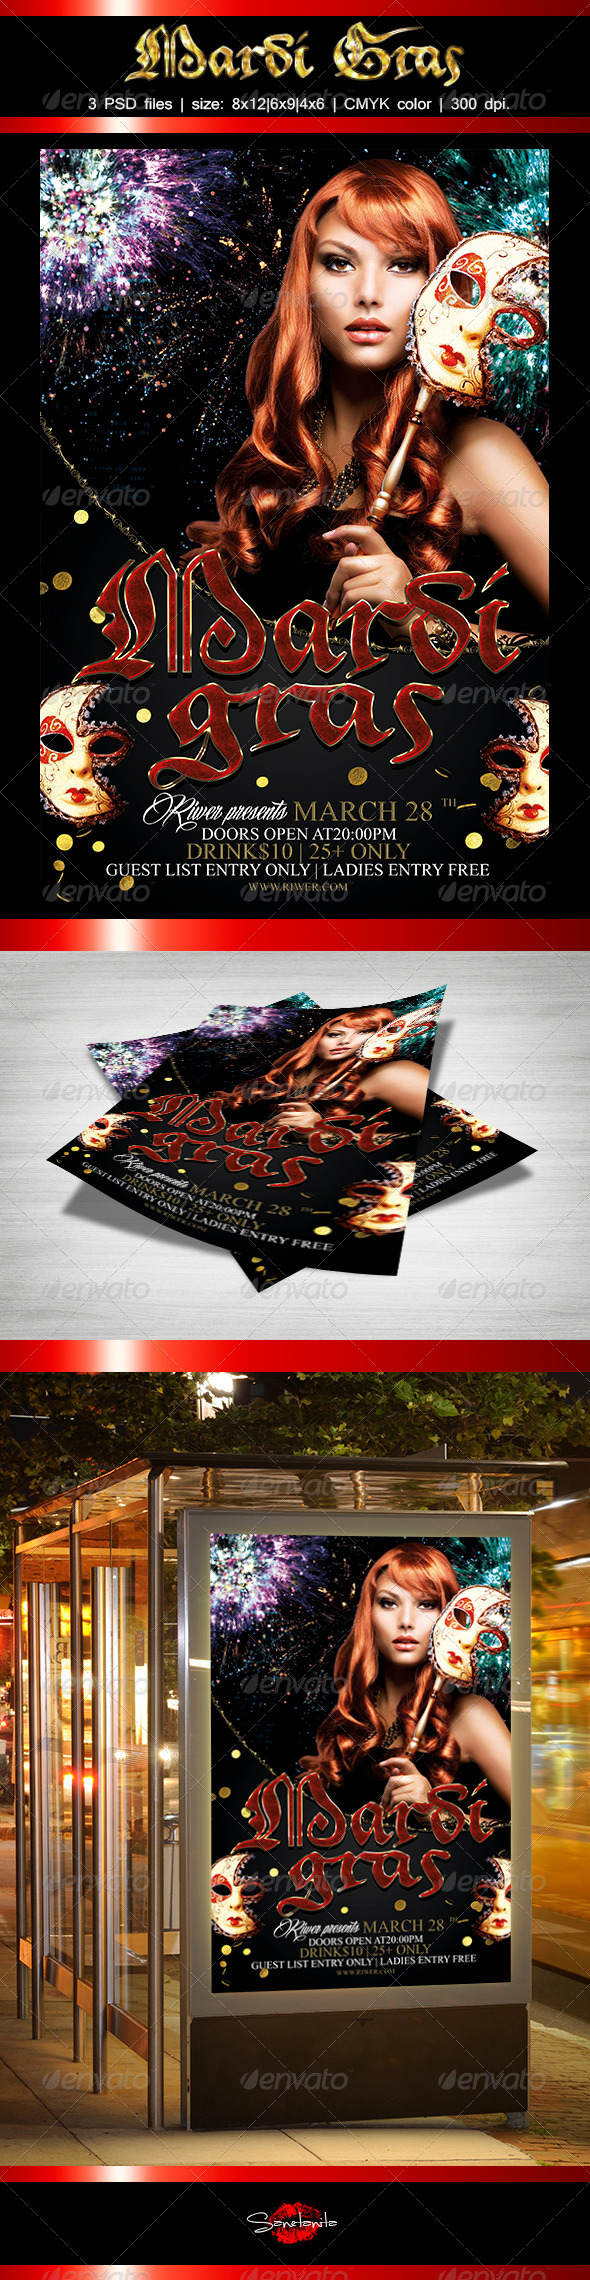 Mardi Gras Flyer Template - Holidays Events